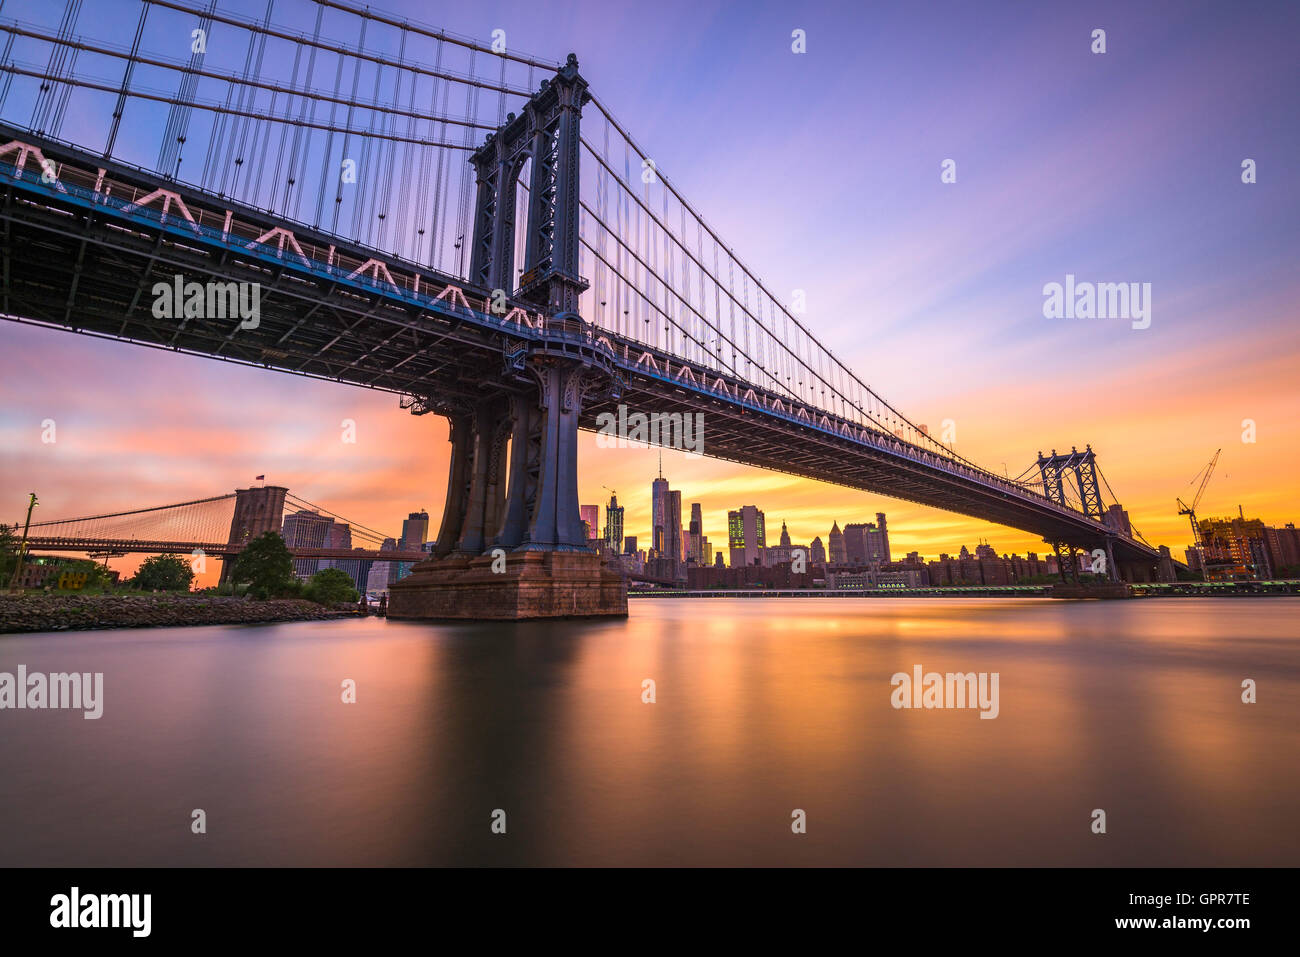 New York City at the Manhattan Bridge spanning the East River during sunset. - Stock Image